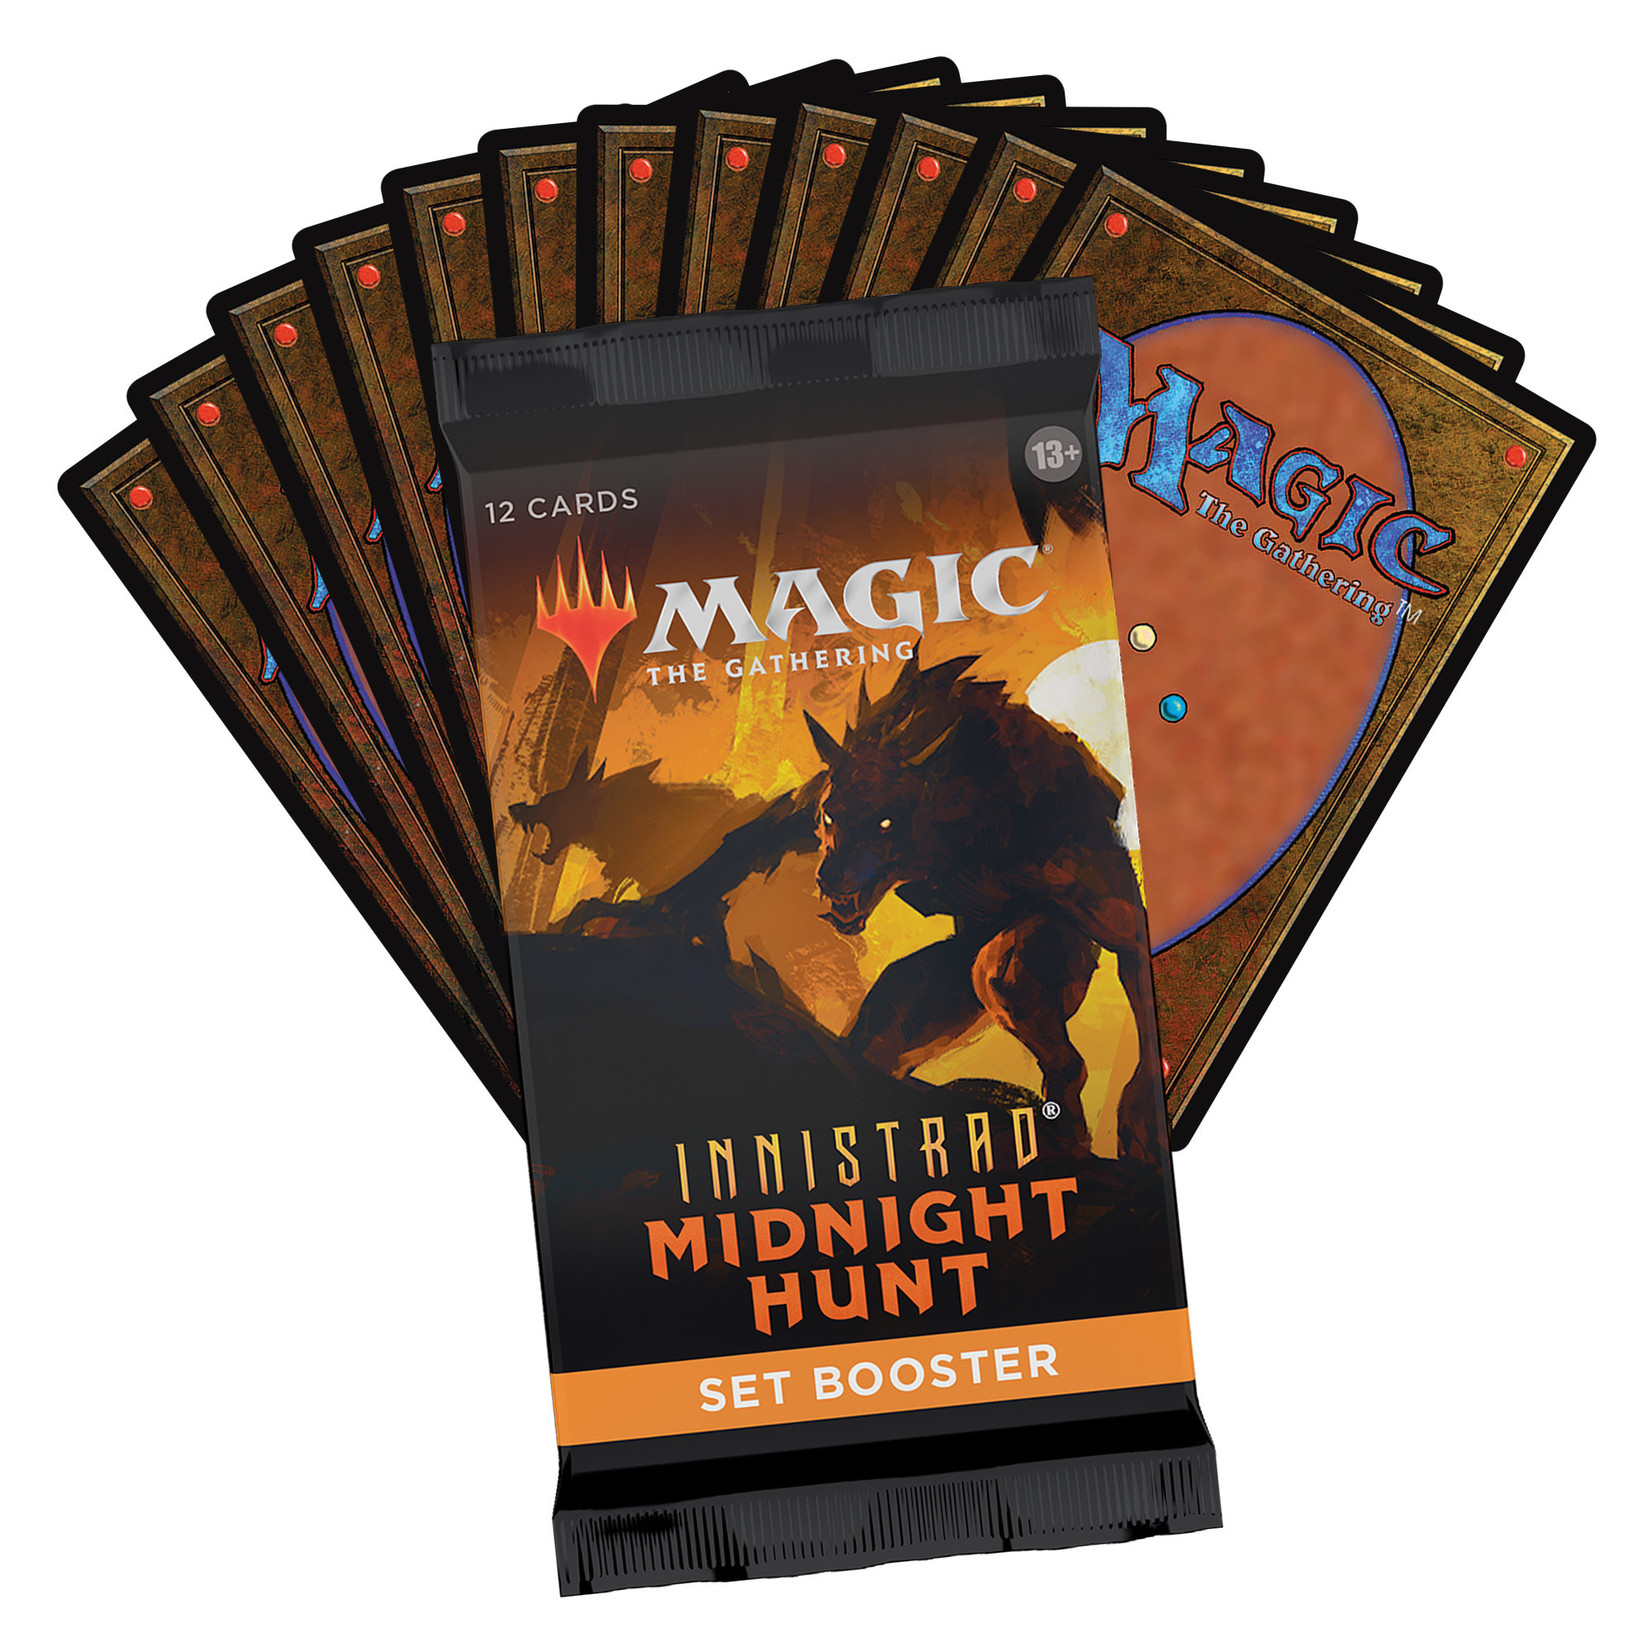 Magic: The Gathering Magic: The Gathering - Innistrad: Midnight Hunt Set Booster Pack